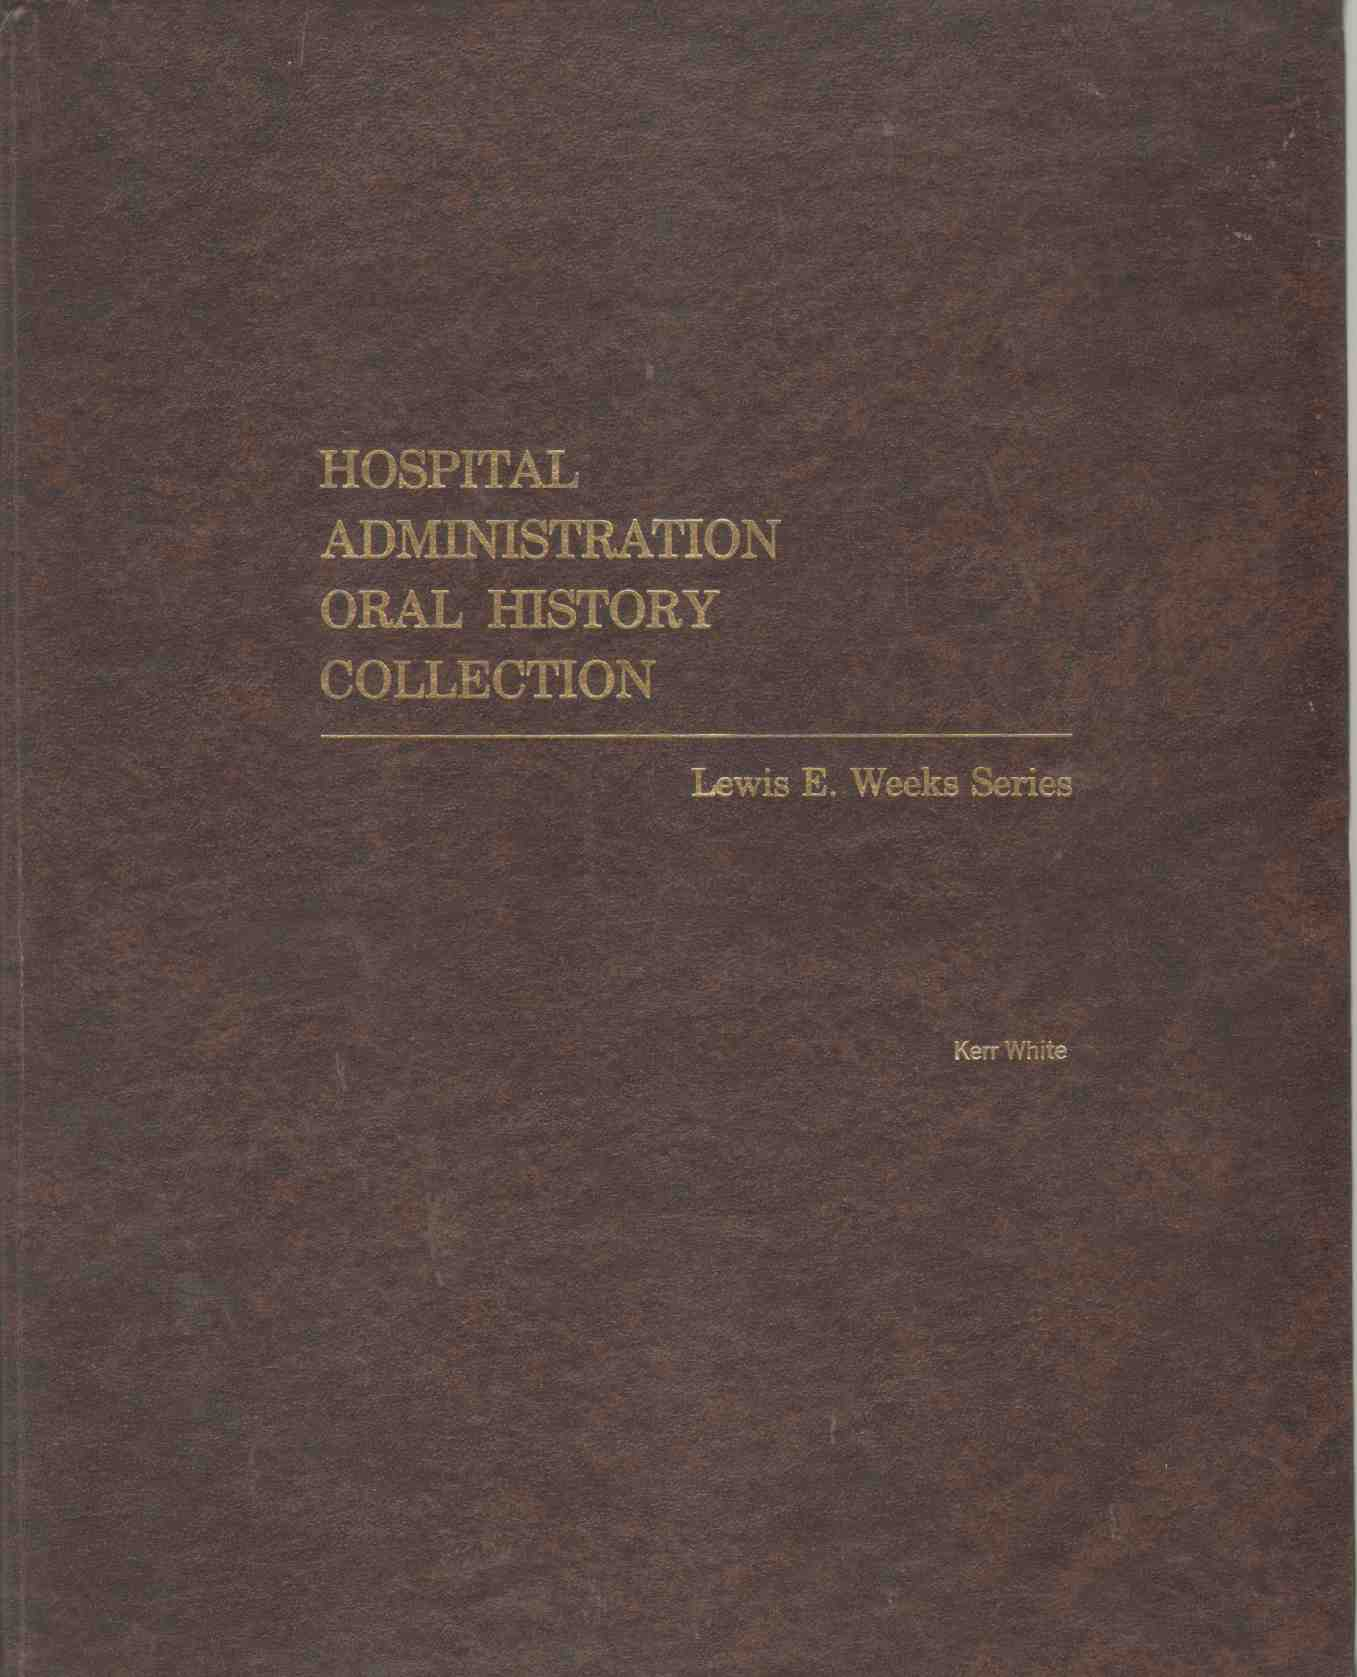 Image for KERR L. WHITE IN FIRST PERSON: AN ORAL HISTORY Hospital Administration Oral History Collection